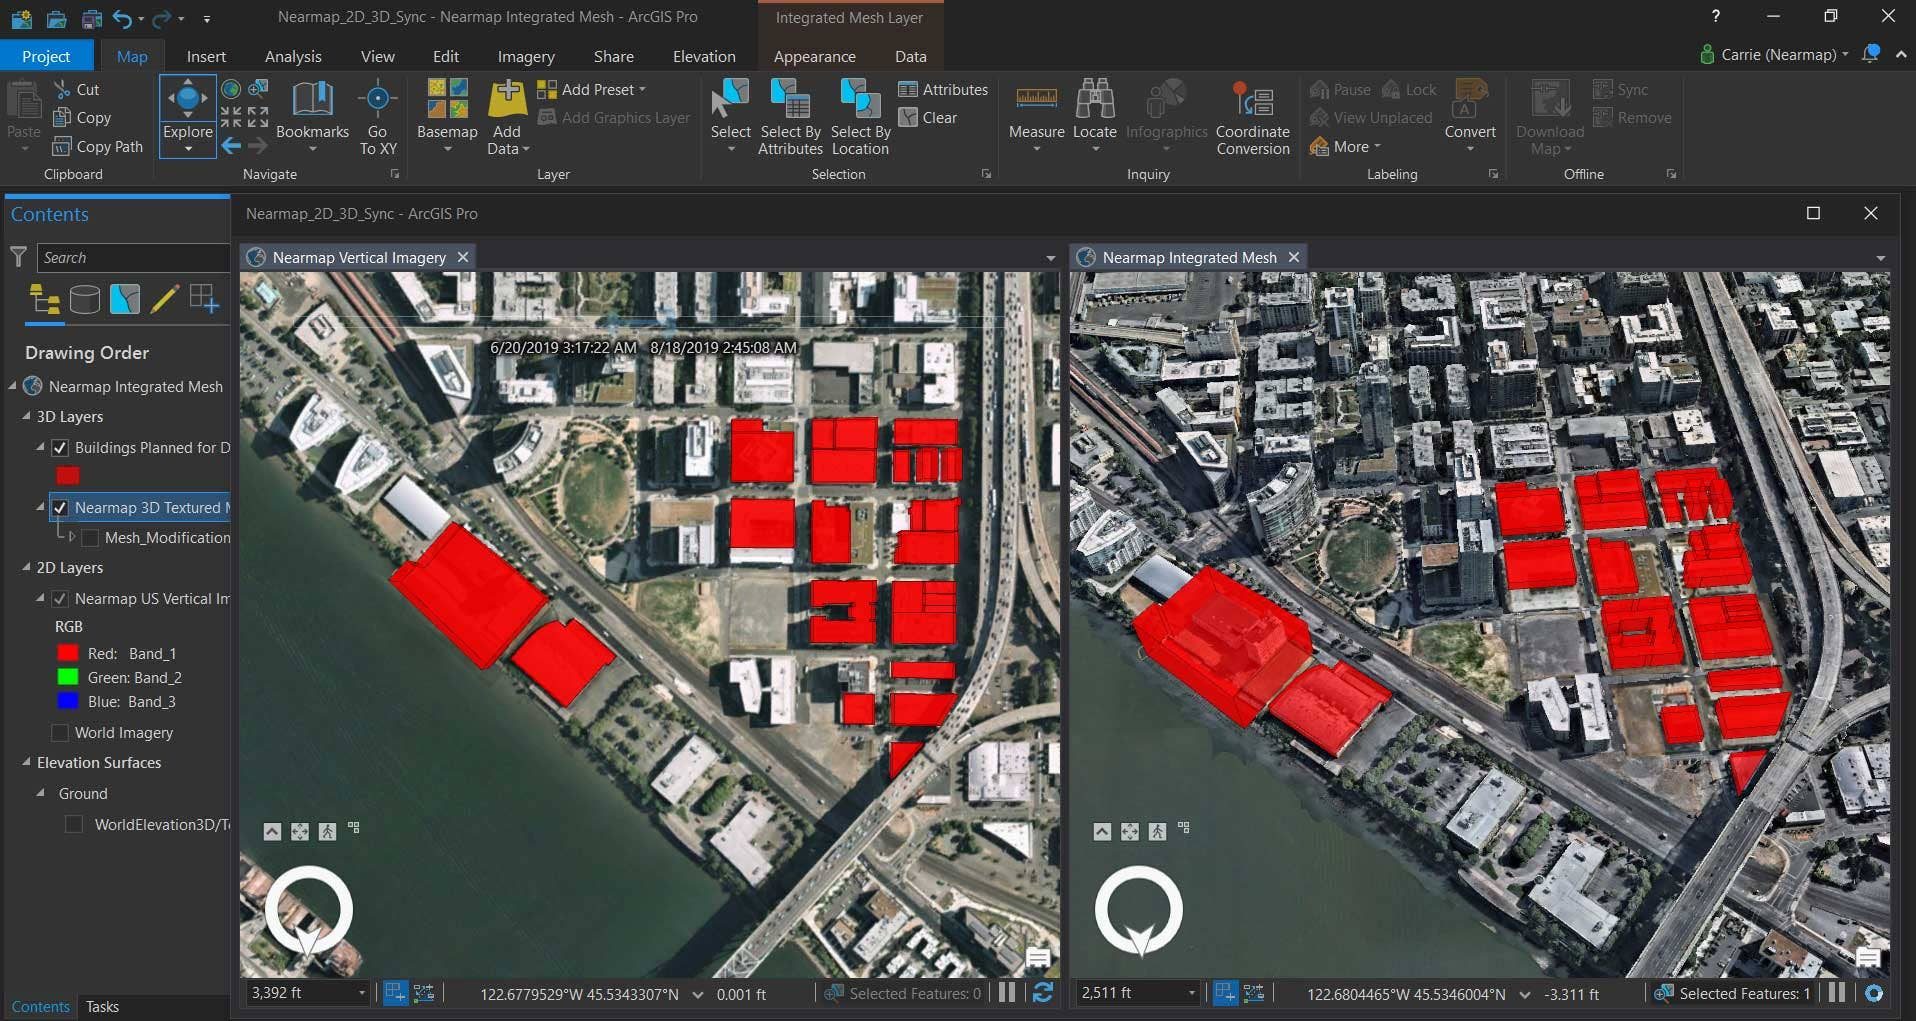 Esri's ArcGIS Pro using Nearmap vertical imagery on the left and 3D textured mesh in SLPK format on the right.